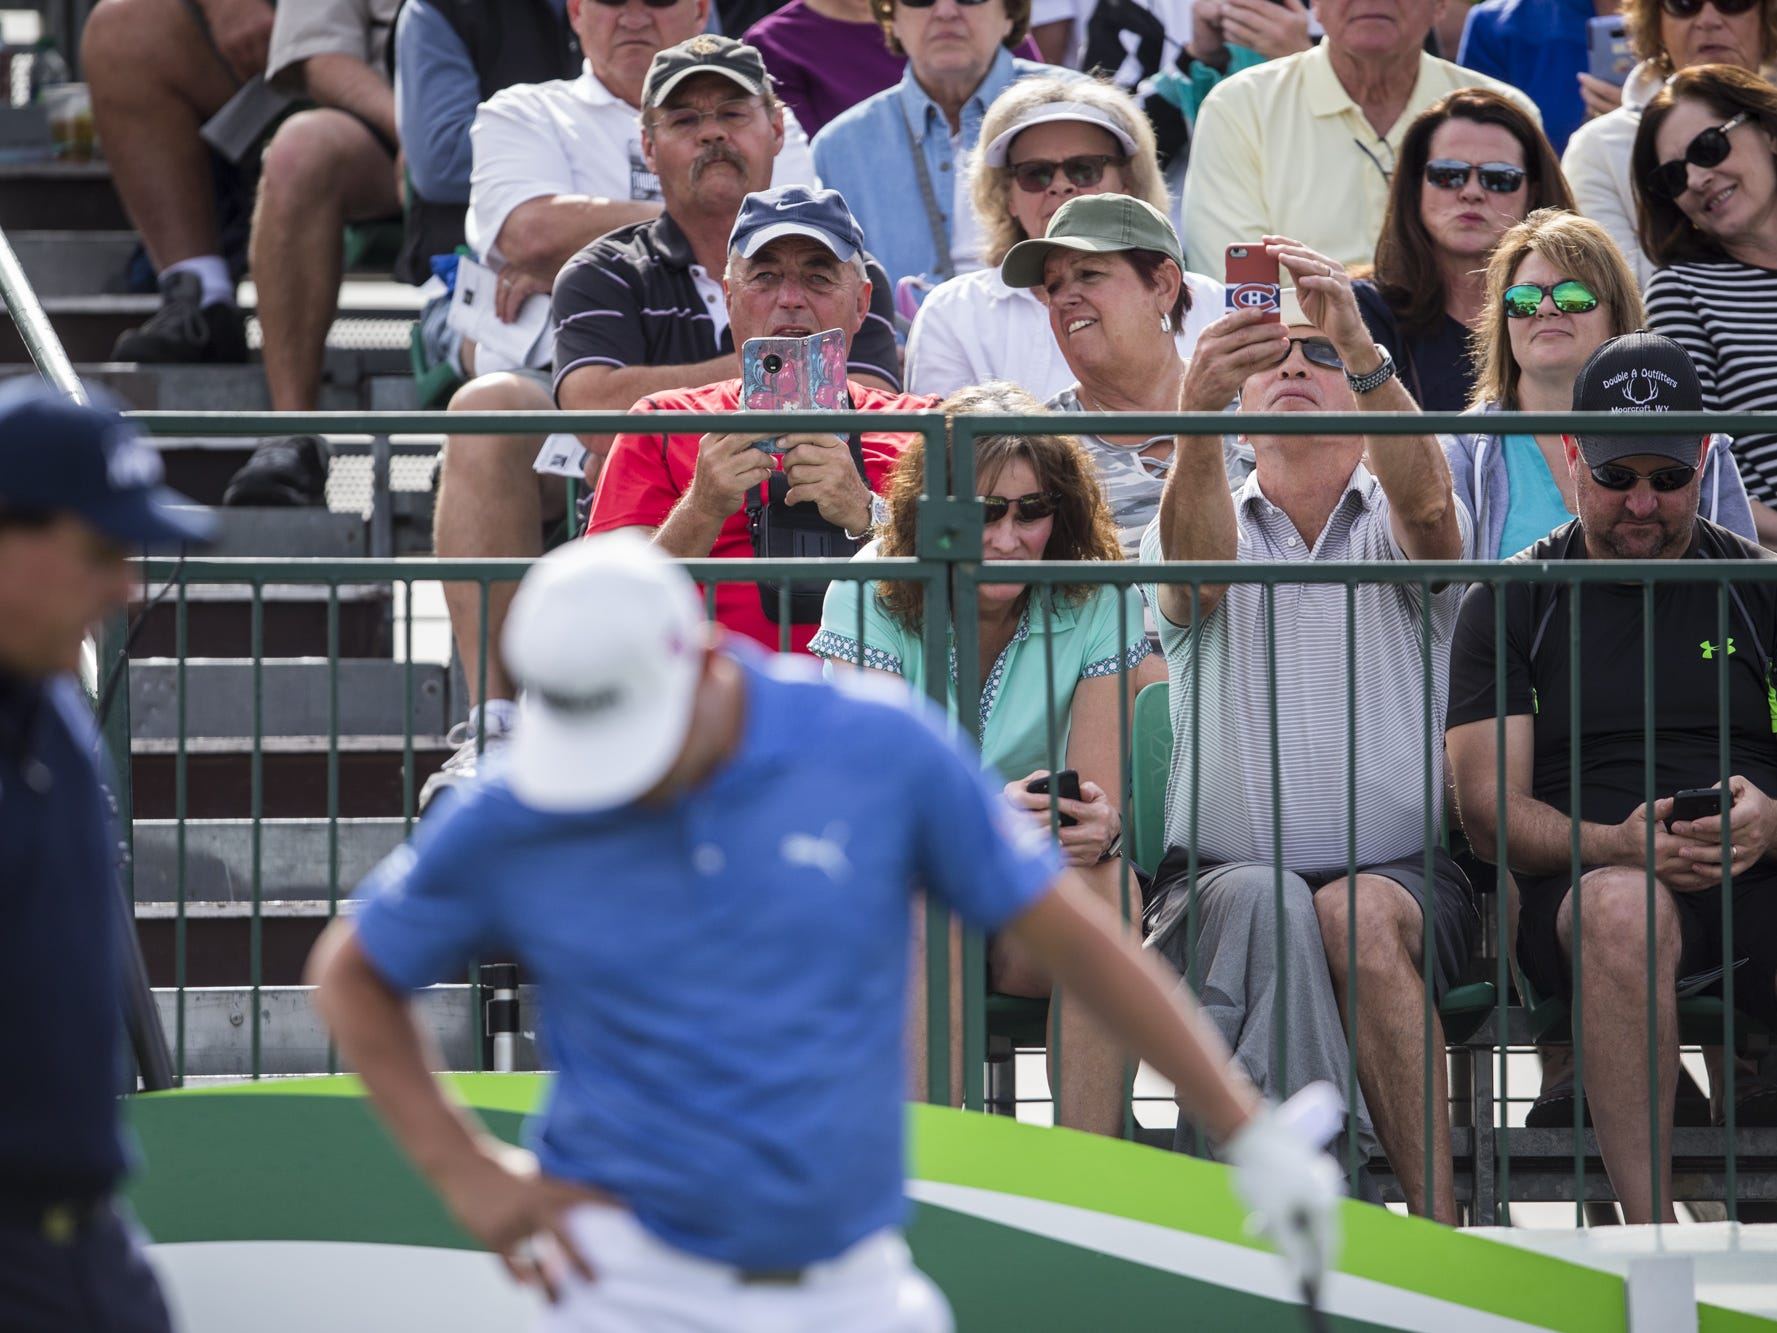 Fans watch as Phil Mickelson (left) and Gary Woodland prepare to tee off at the 1st hole during the Waste Management Phoenix Open on Thursday, Jan. 31, 2019, at TPC Scottsdale in Scottsdale, Ariz.